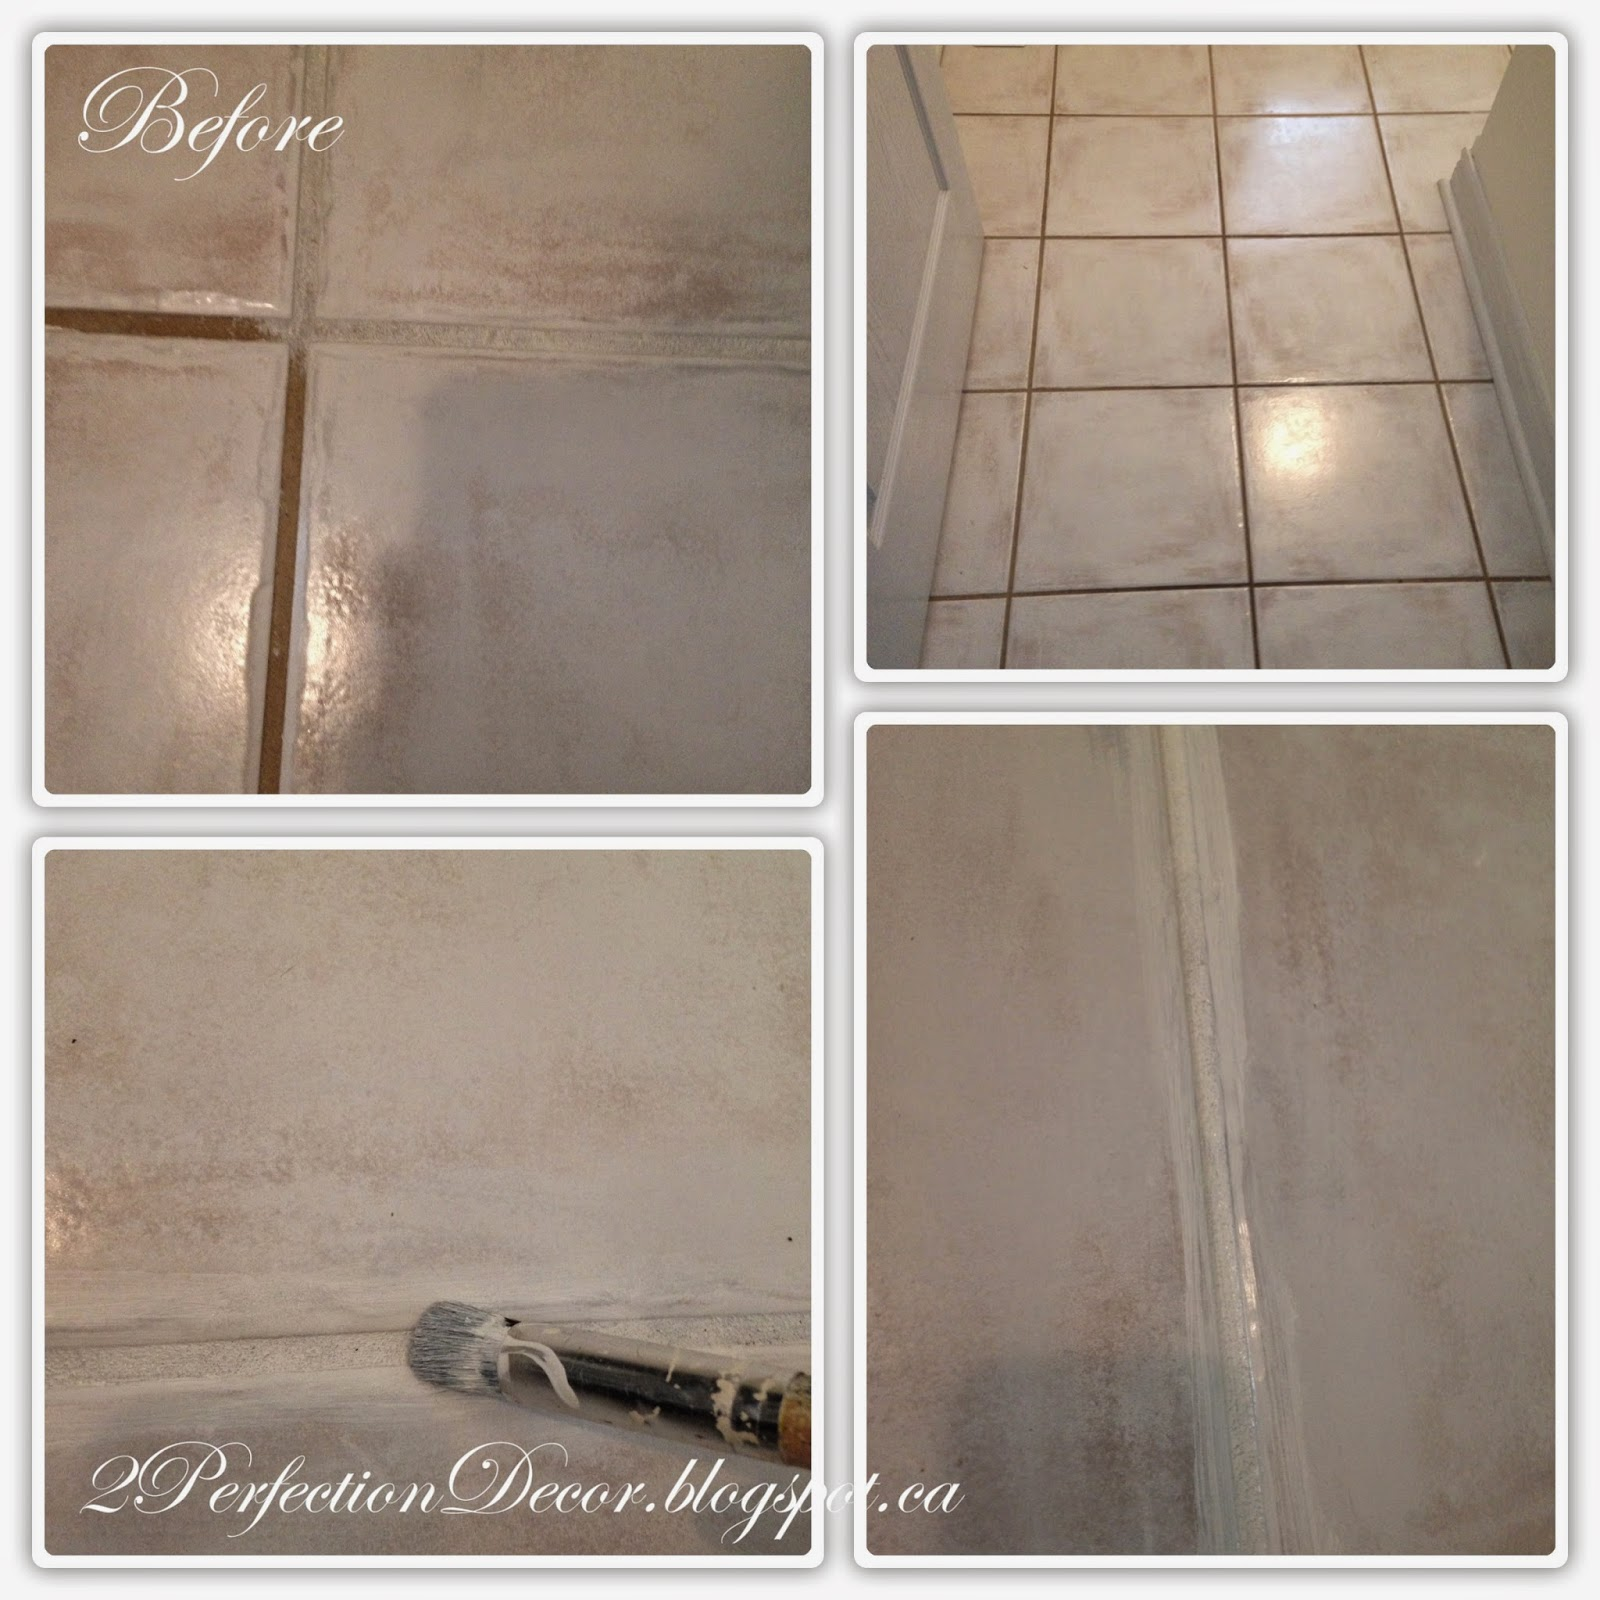 2perfection Decor How To Paint Dark Grout White